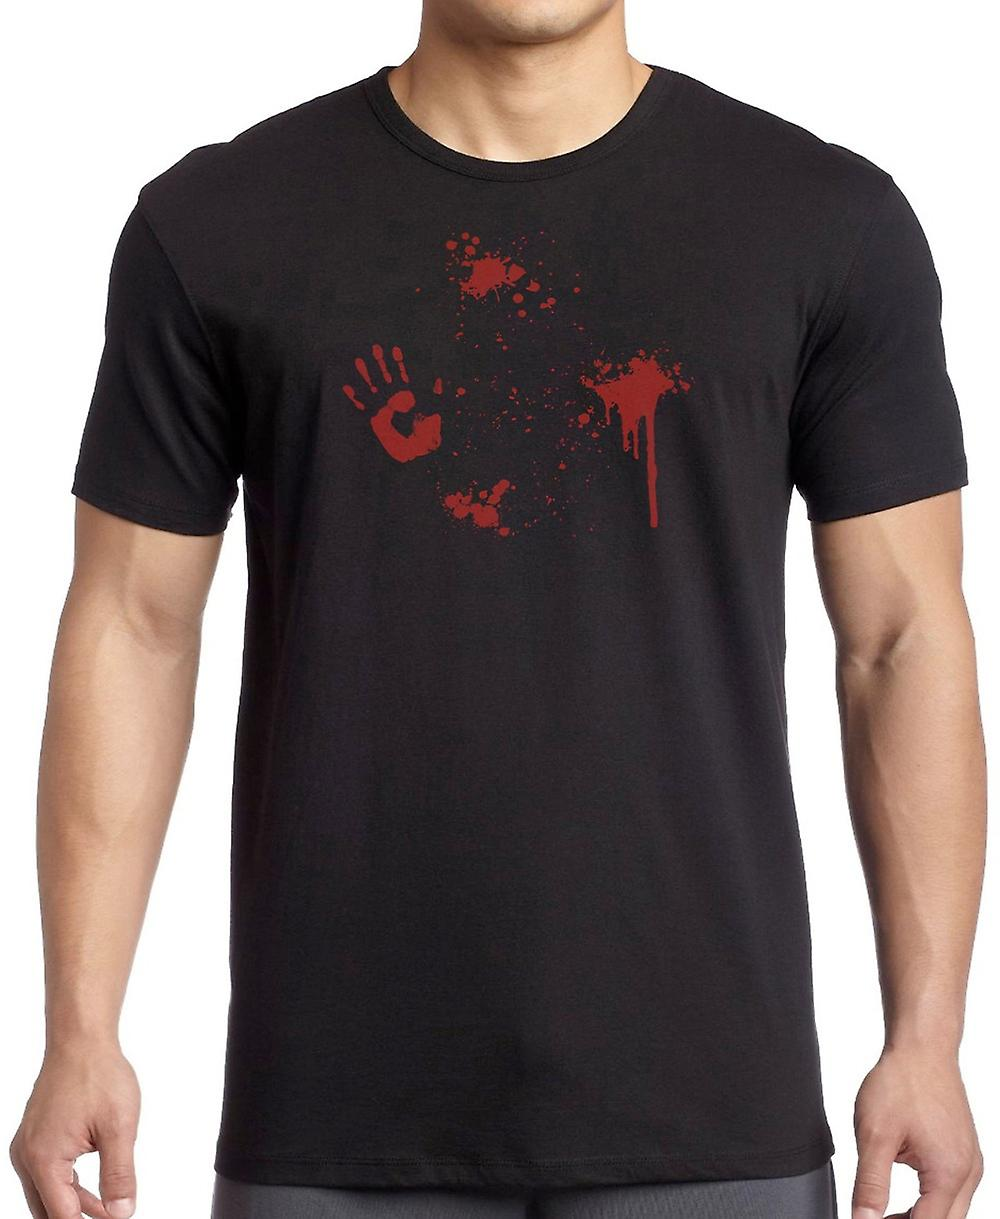 Zombies Ruined This Shirt - Funny T Shirt